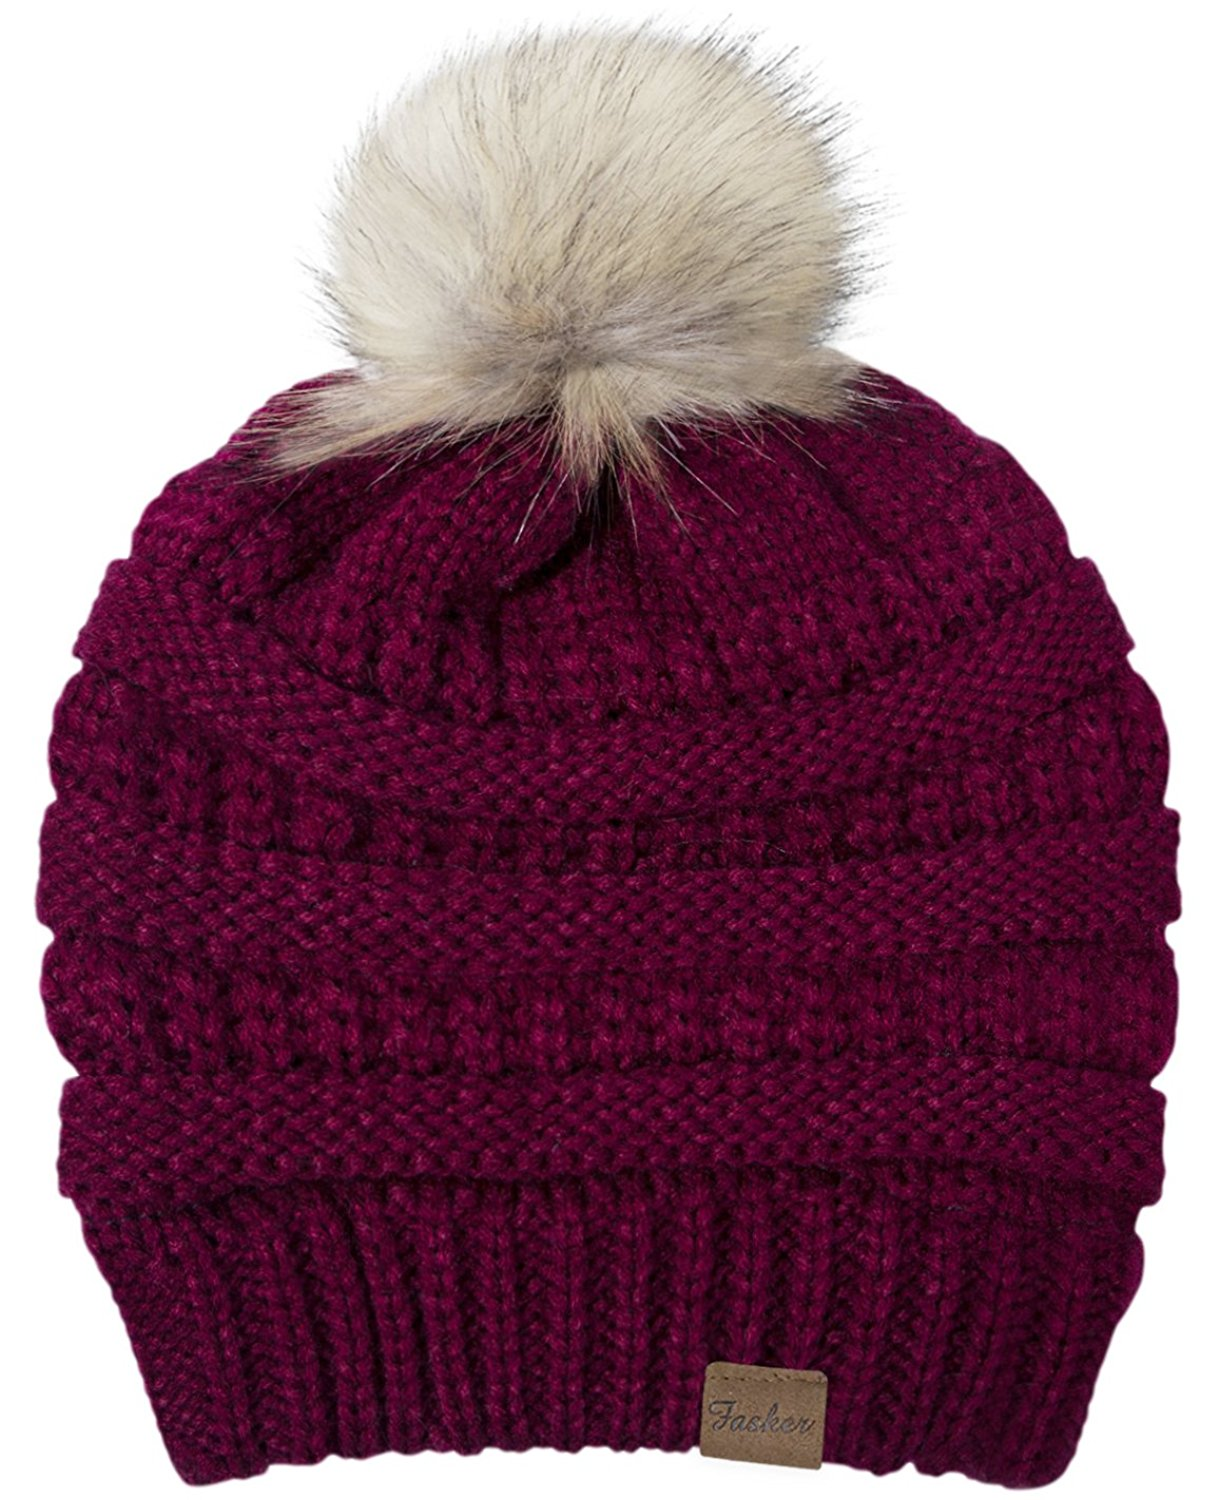 599241df3c491a Get Quotations · Fasker Womens CC Style Beanie Hat Winter Cable Knit  Slouchy Pom Pom Beanie Hat